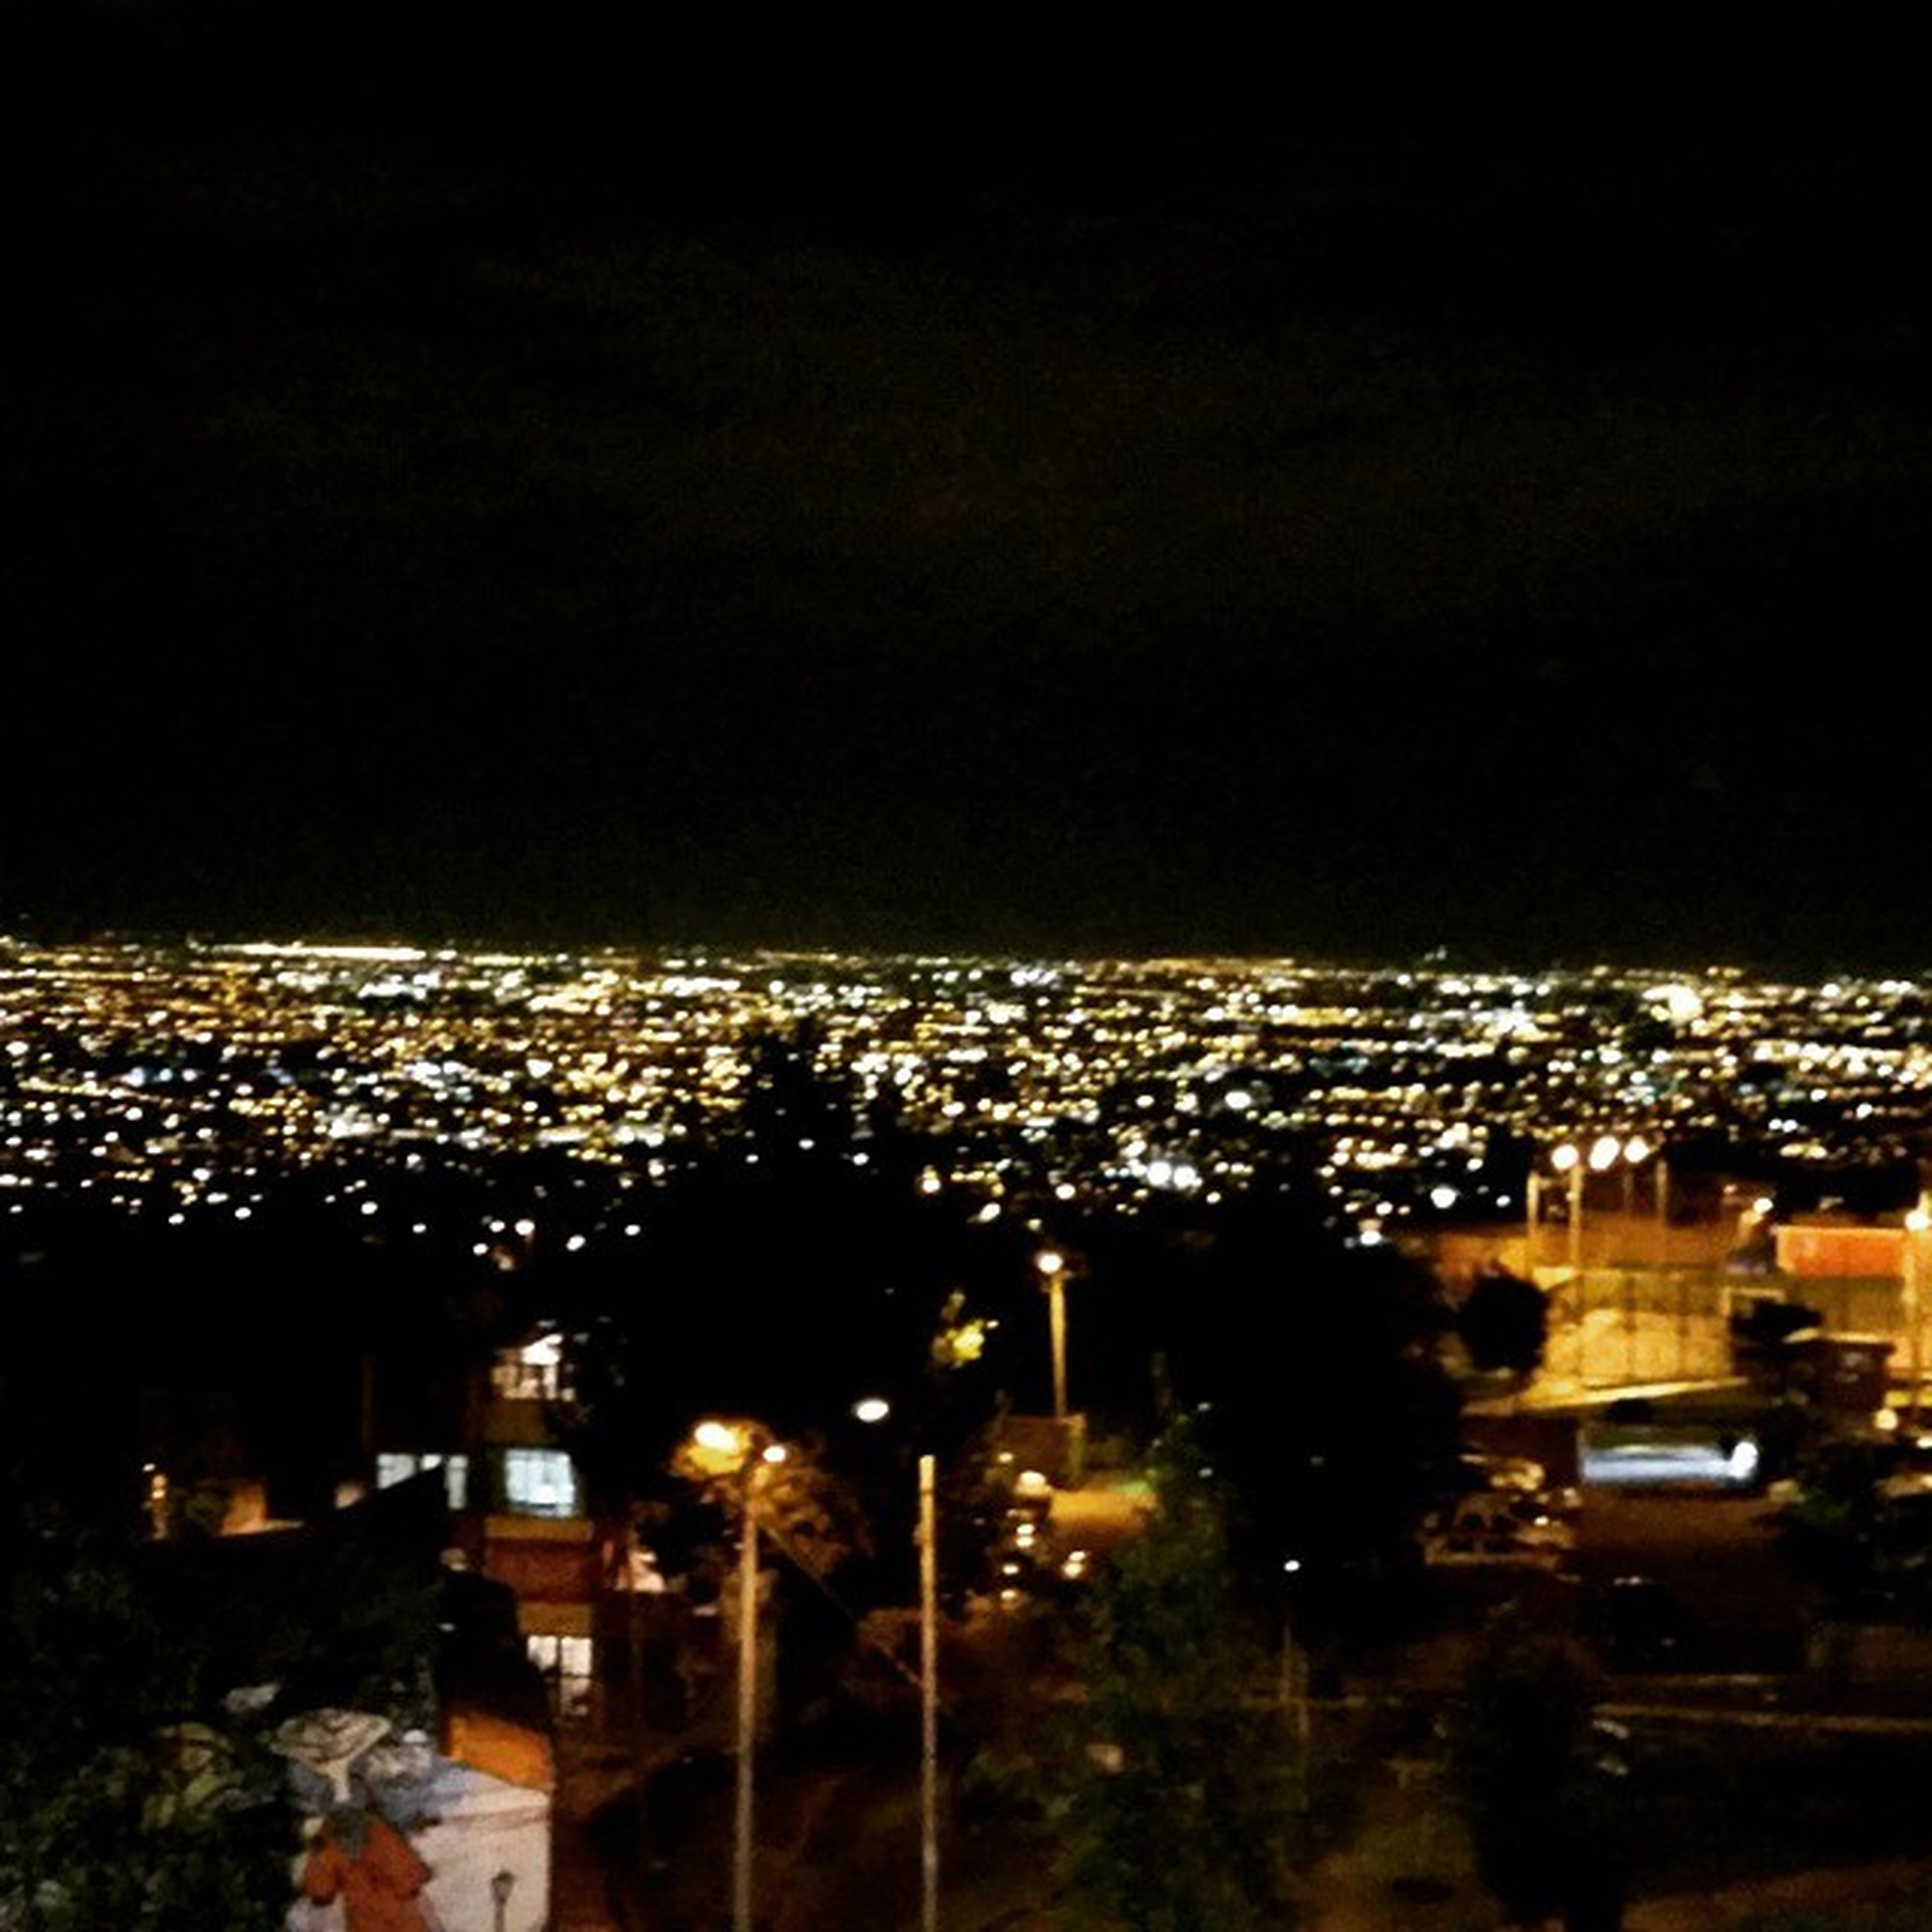 cityscape, city, building exterior, illuminated, crowded, architecture, night, built structure, high angle view, residential district, residential building, aerial view, city life, residential structure, sky, copy space, clear sky, skyscraper, no people, outdoors